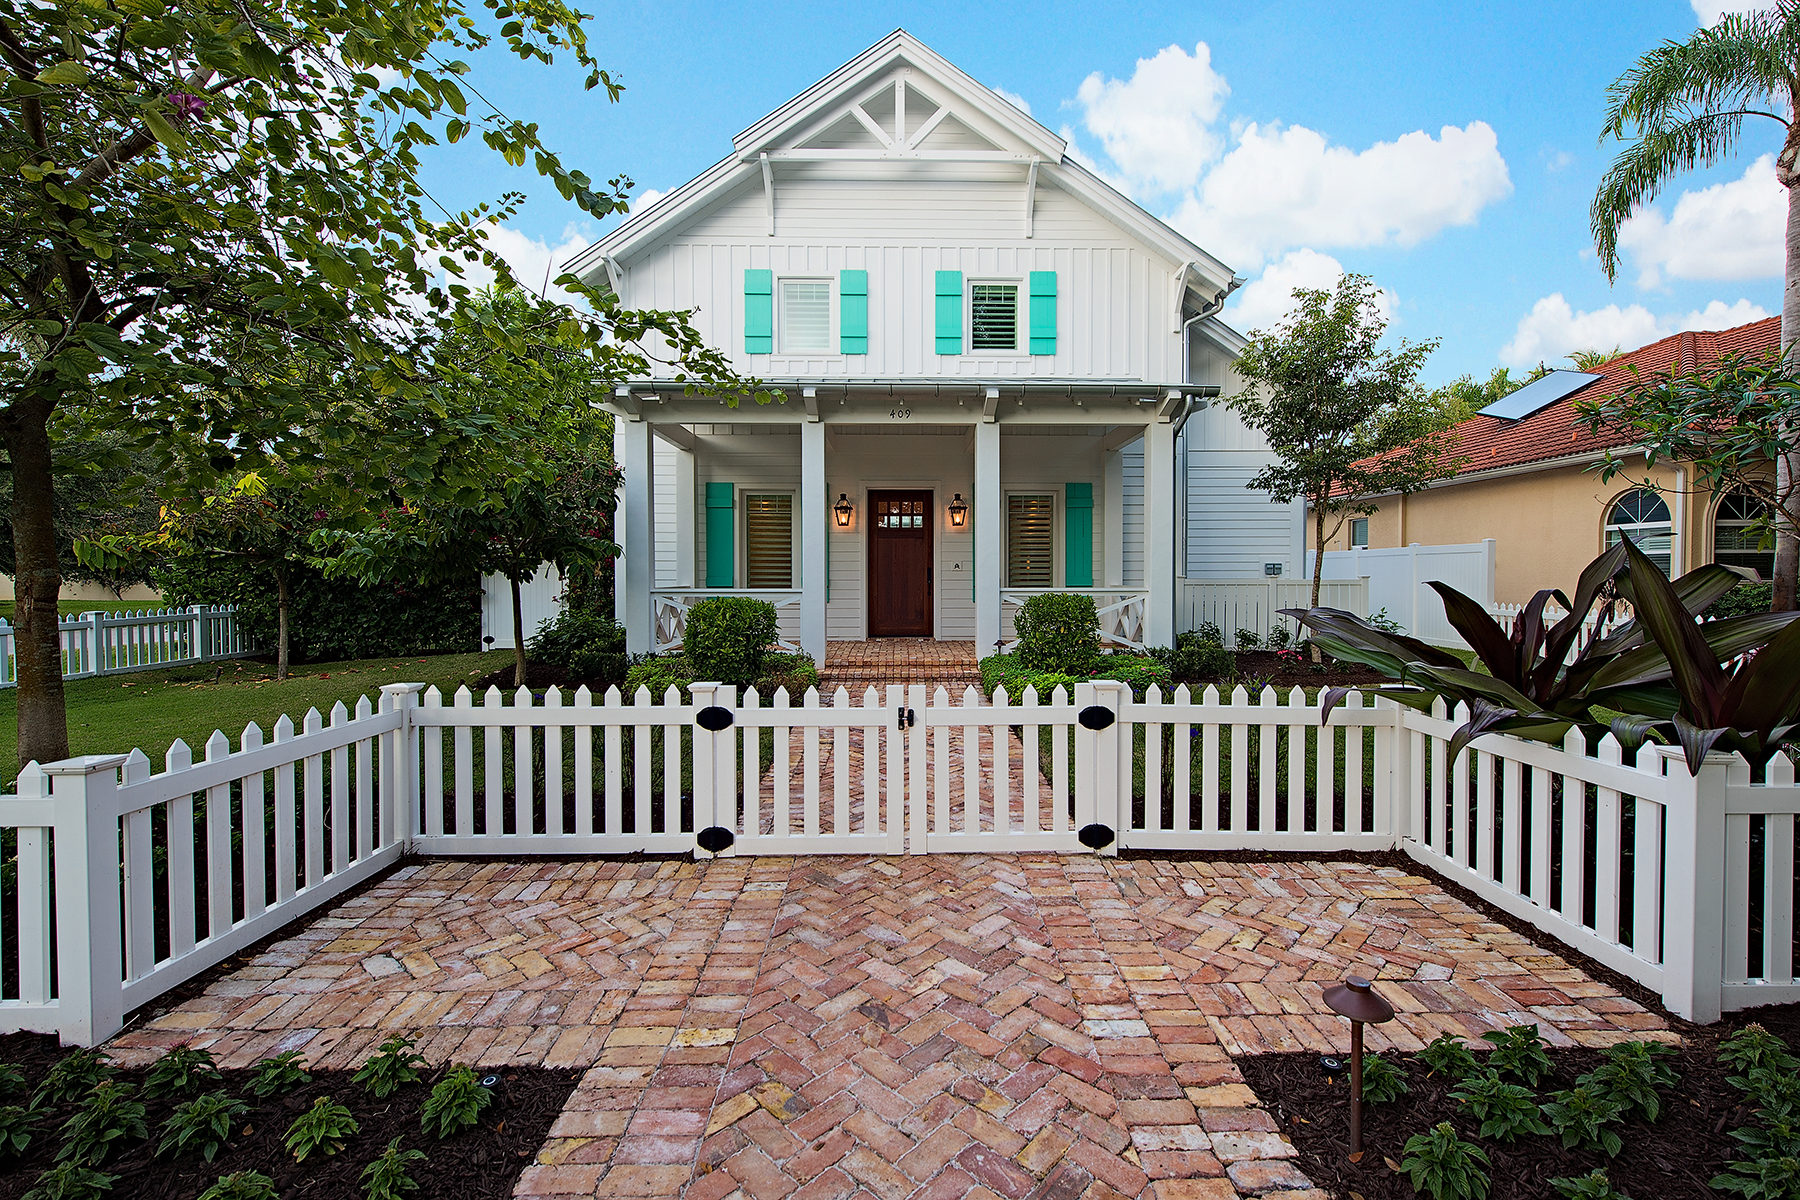 Single Family Home for Sale at OLD NAPLES 409 1st Ave N, Naples, Florida 34102 United States